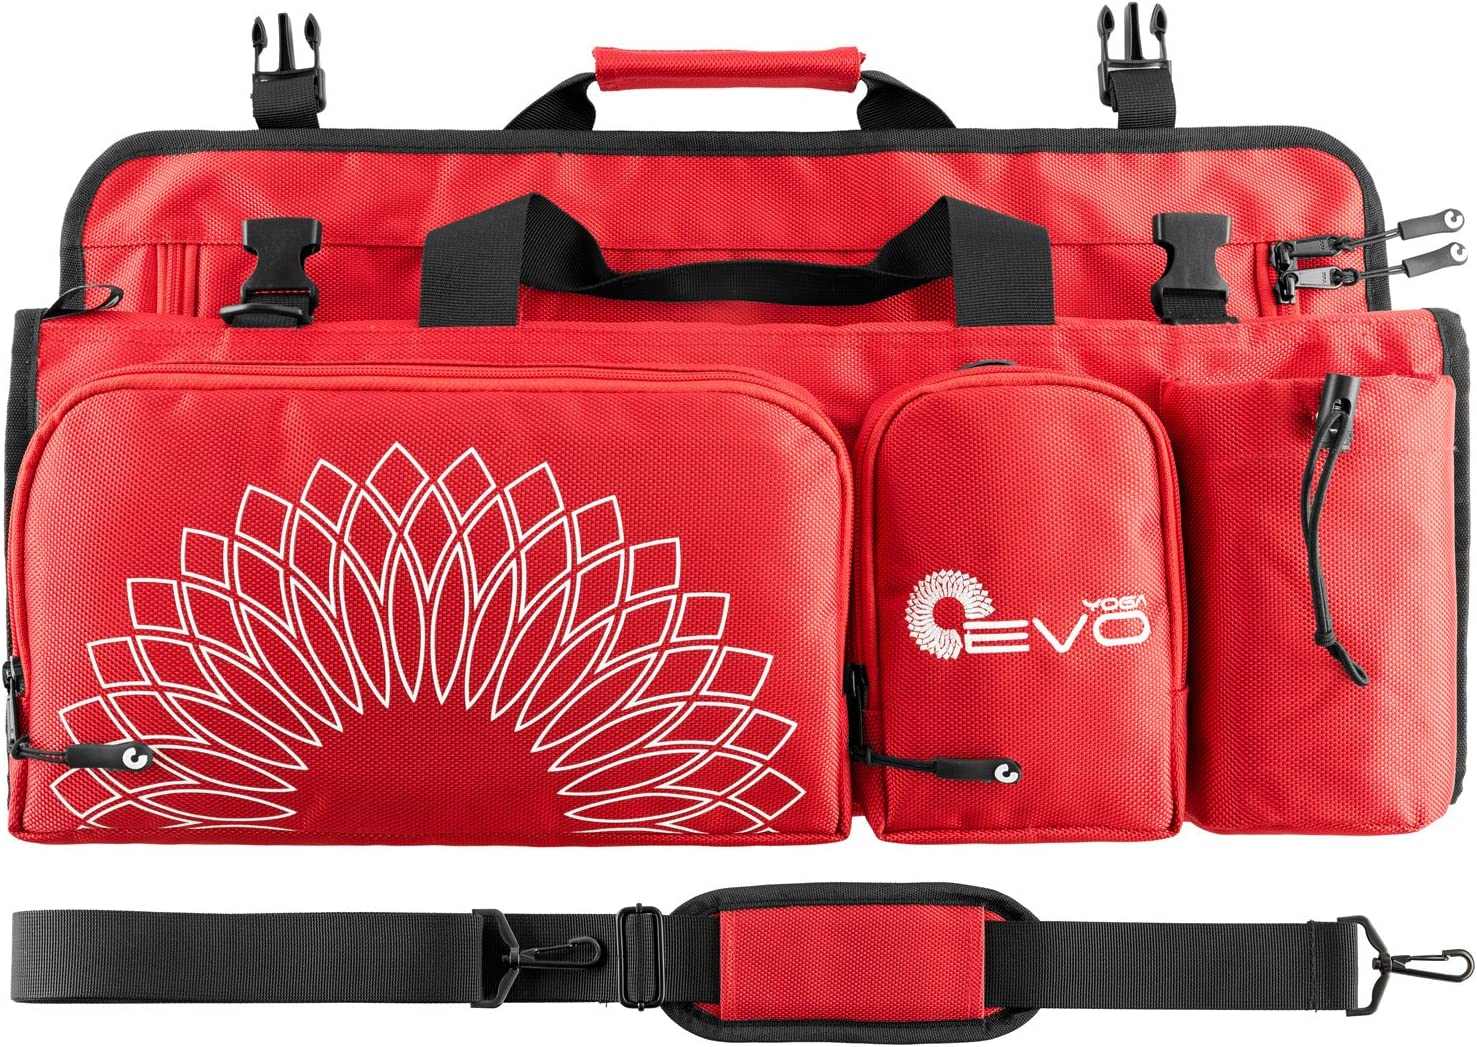 Amazon Com Yoga Evo Yoga Bag For Women Large Yoga Duffle Bag For Mat And Towel With Adjustable Strap Sports Outdoors